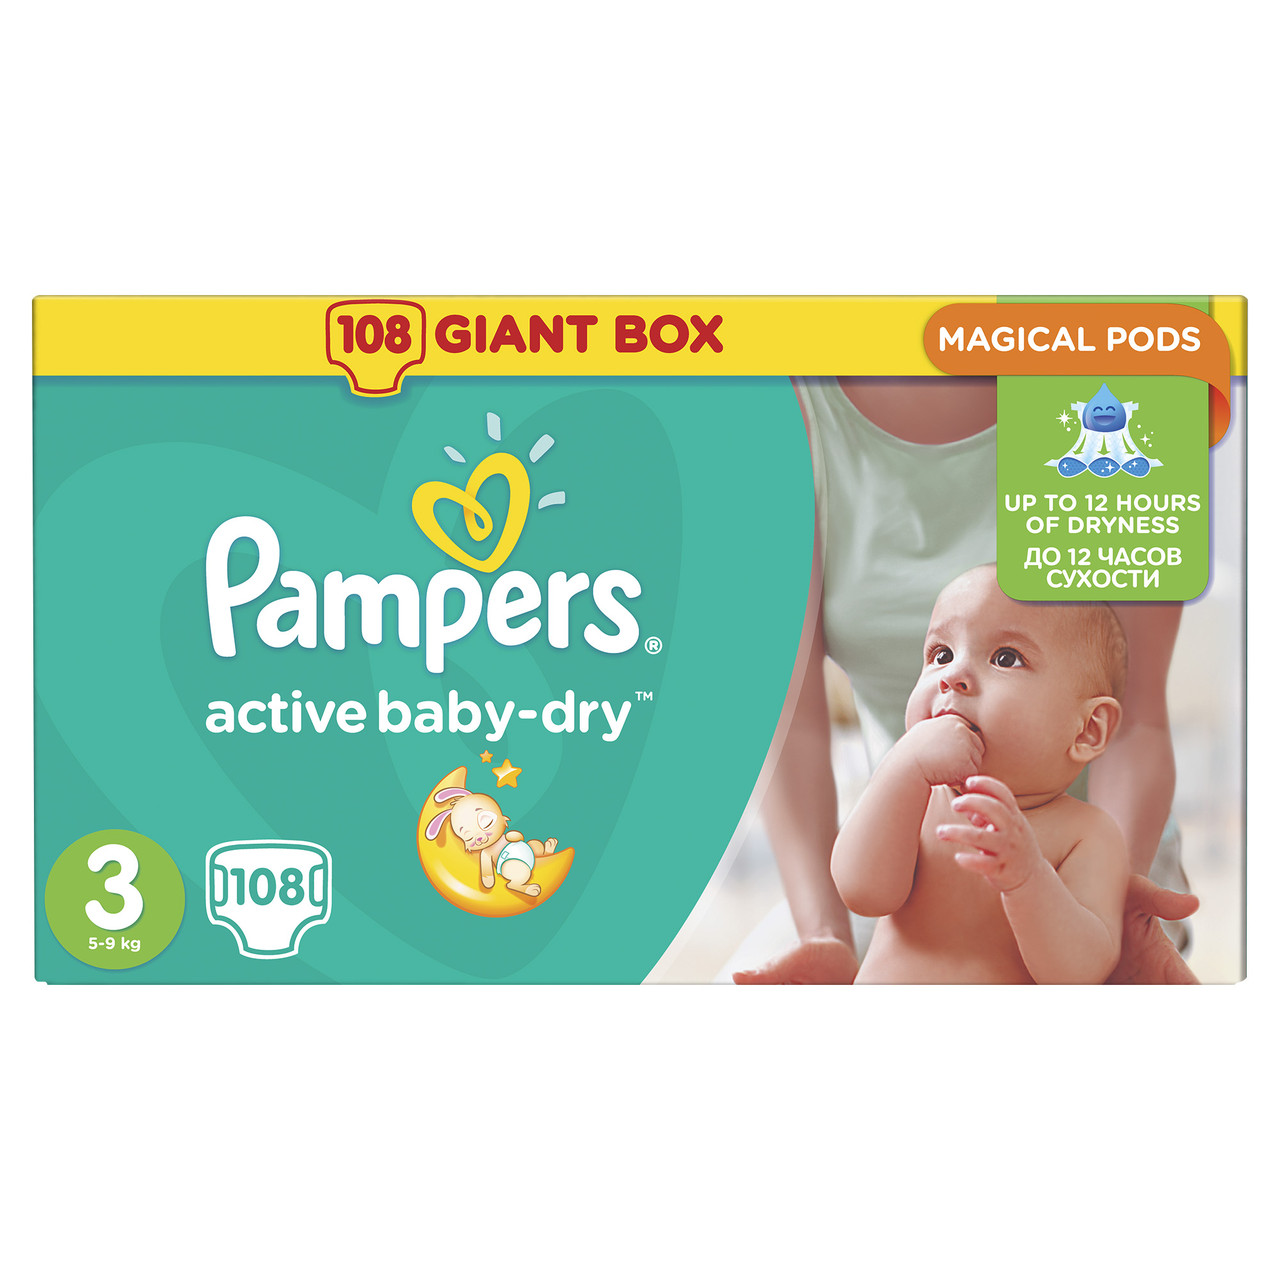 f6c7e5571251 Подгузники Pampers Active Baby-Dry 5-9 кг, 3 размер, 108 шт., цена 8 ...